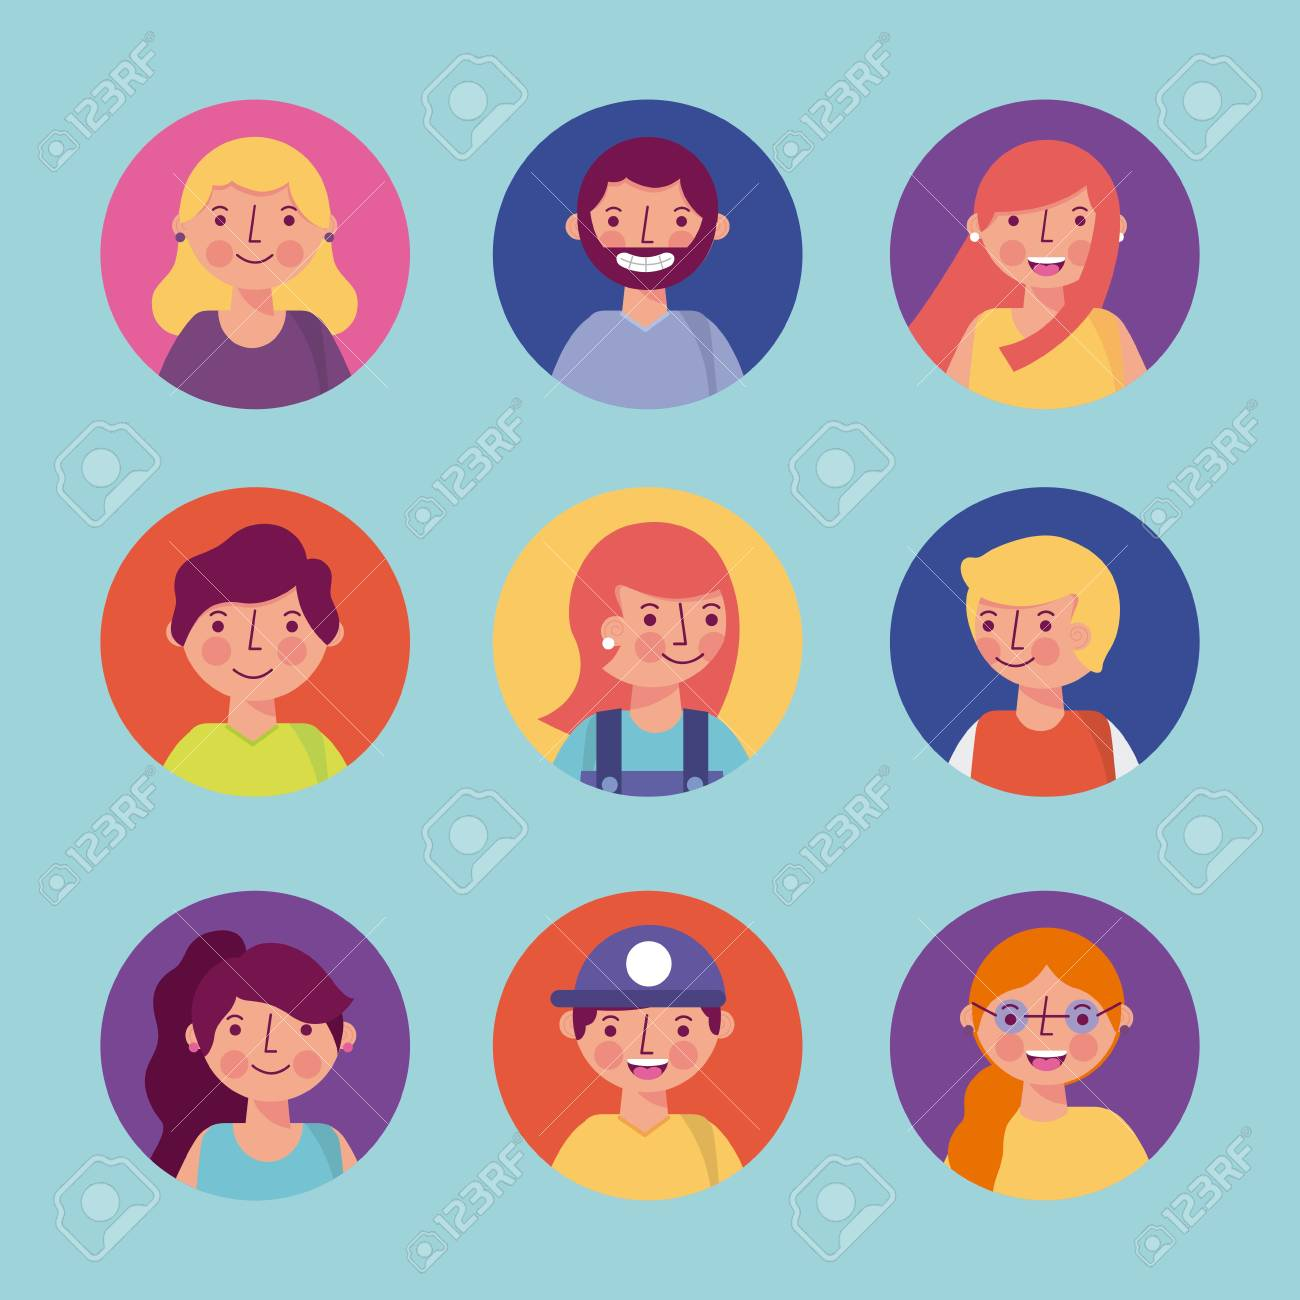 People woman man character stickers faces smiling portrait vector illustration stock vector 114982330